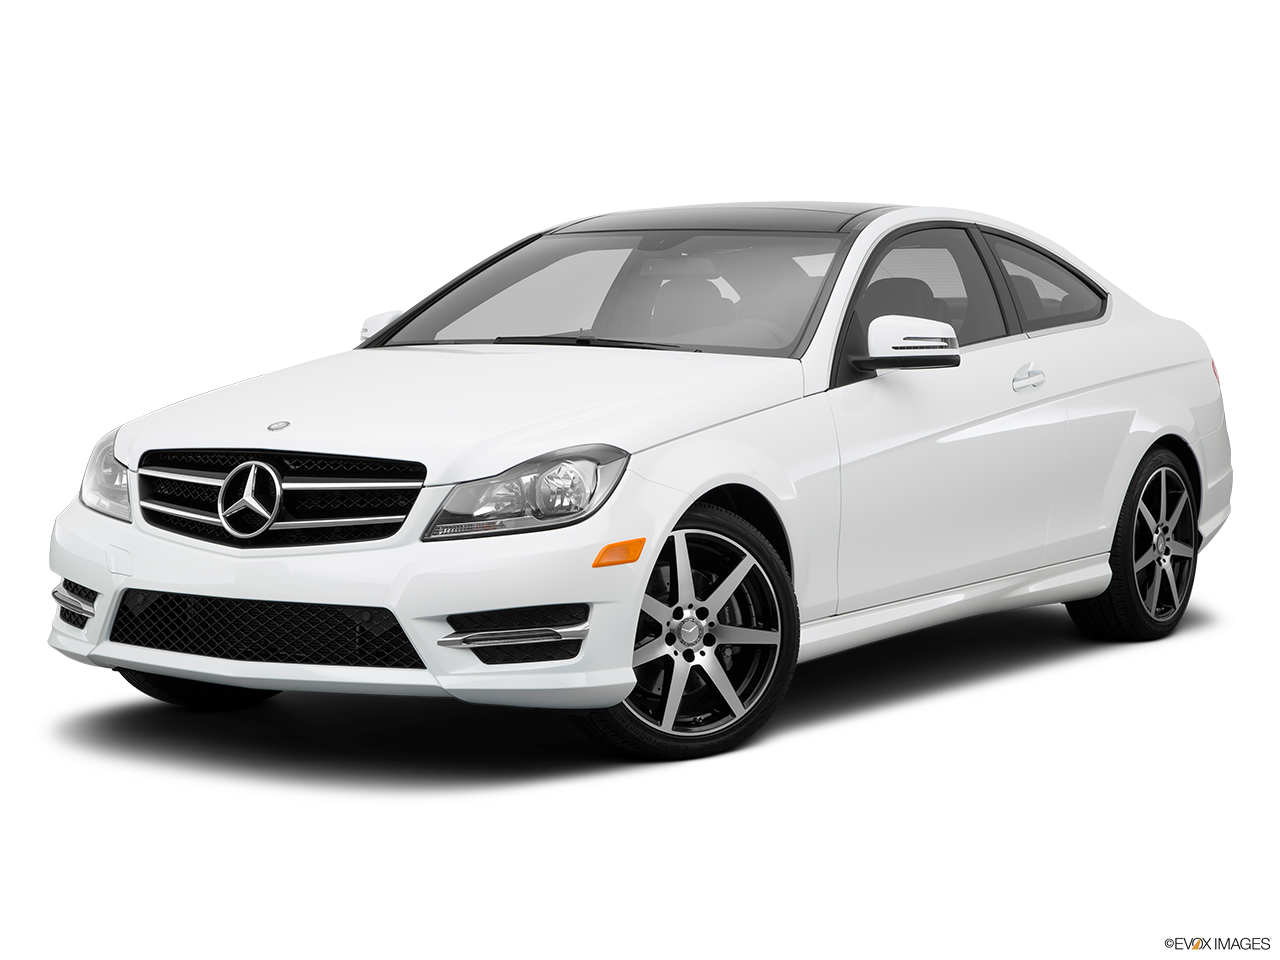 Clipart cars impala. Mercedes benz png transparent